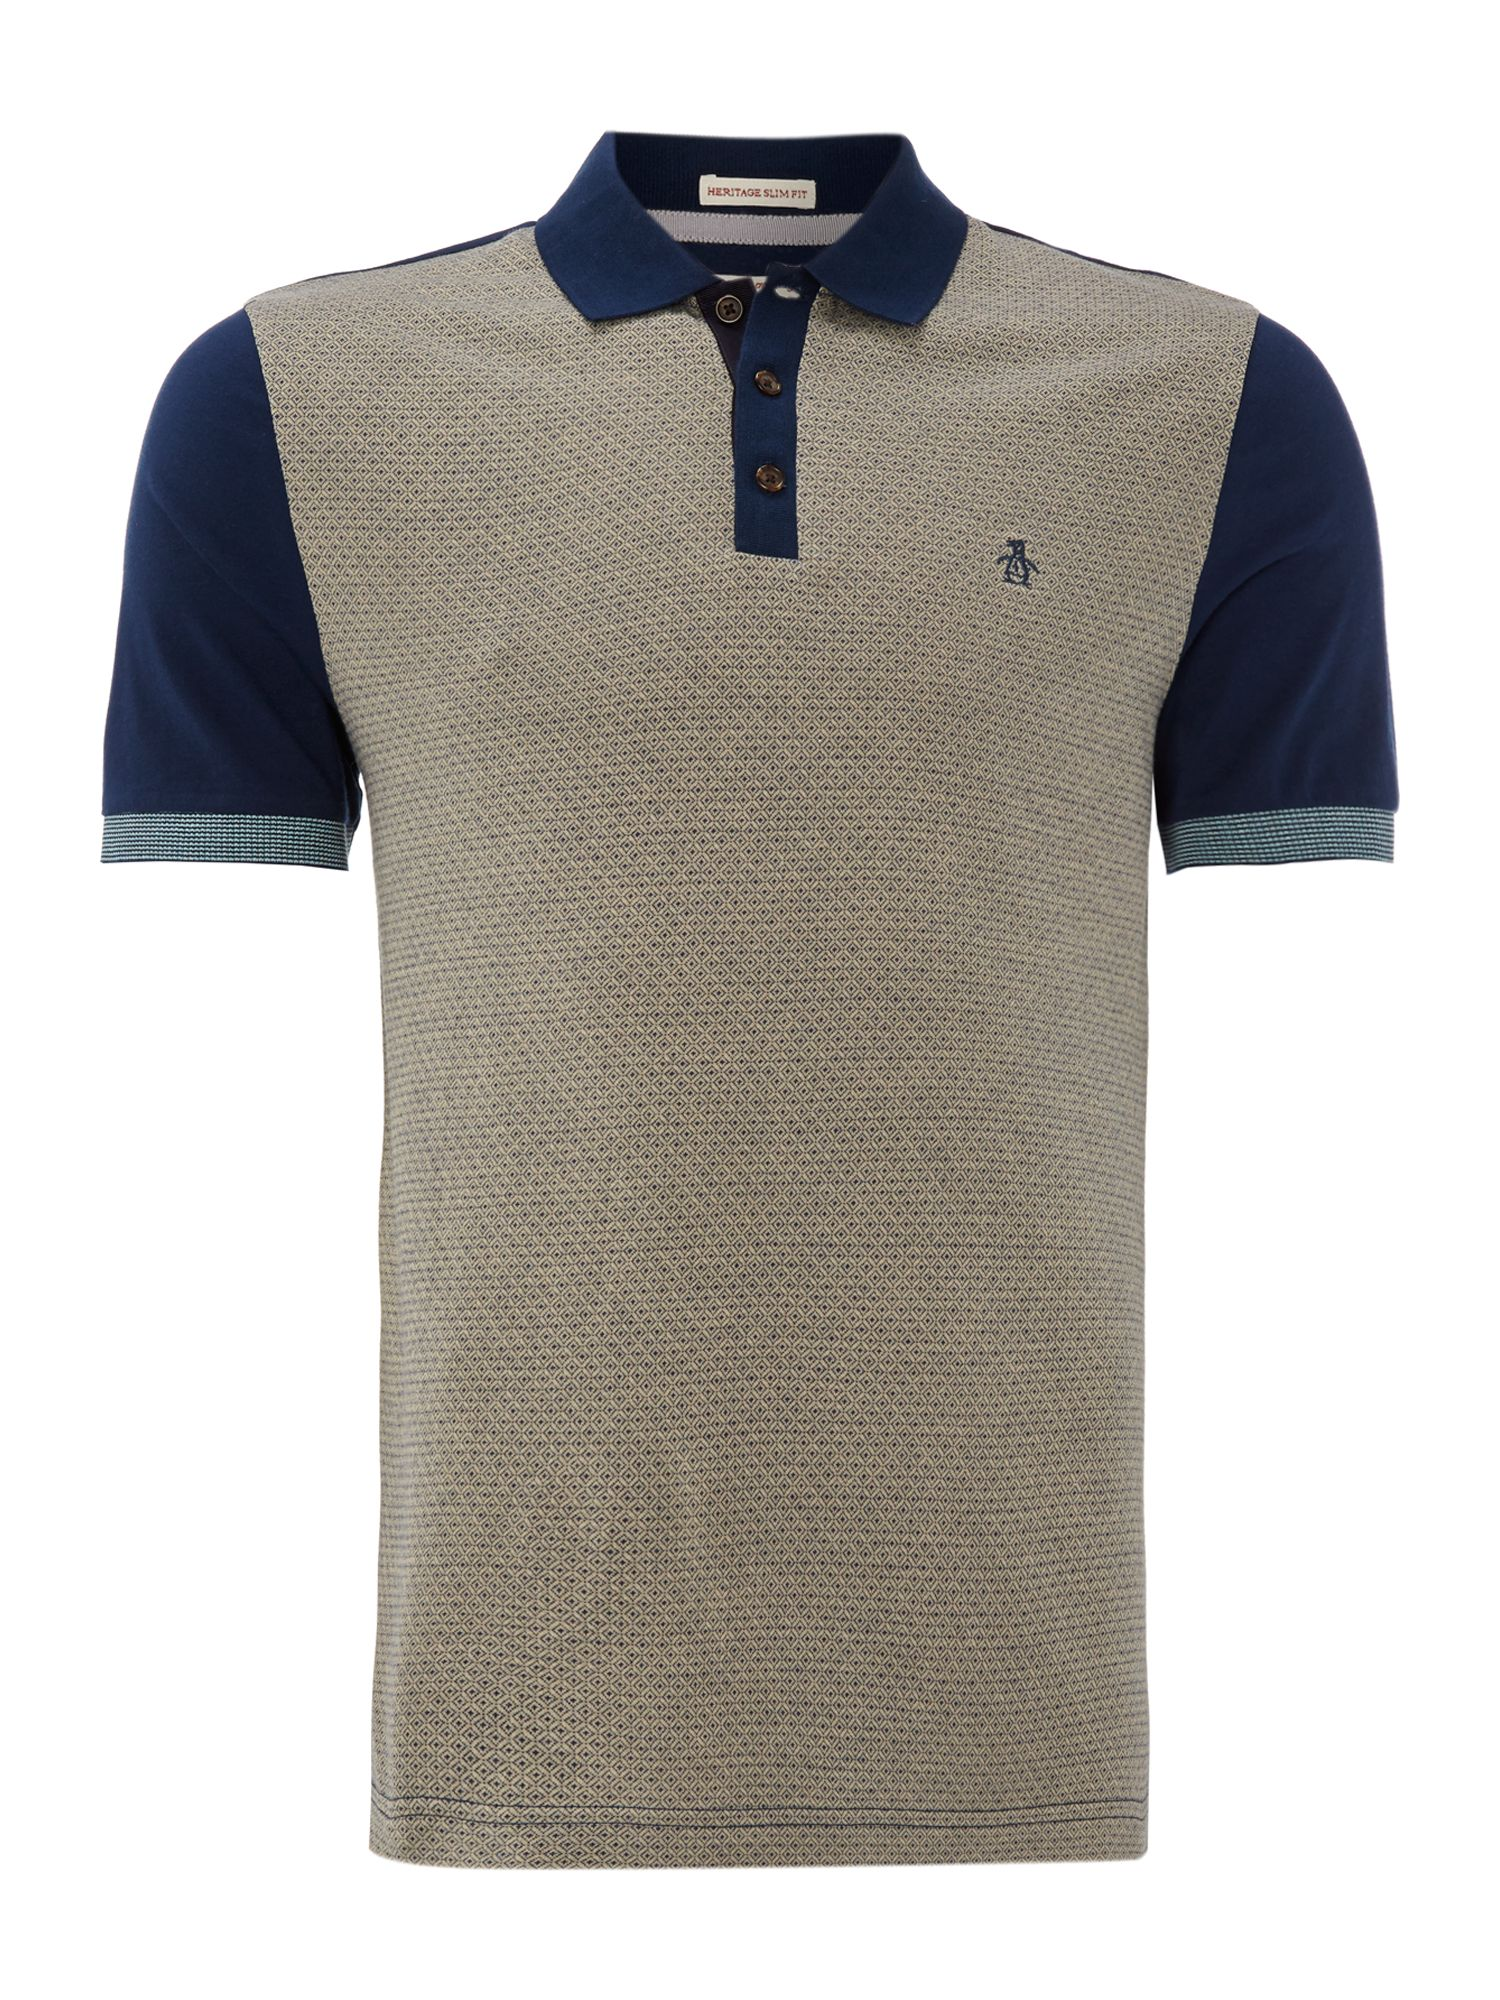 Jacquard front colour blocked polo